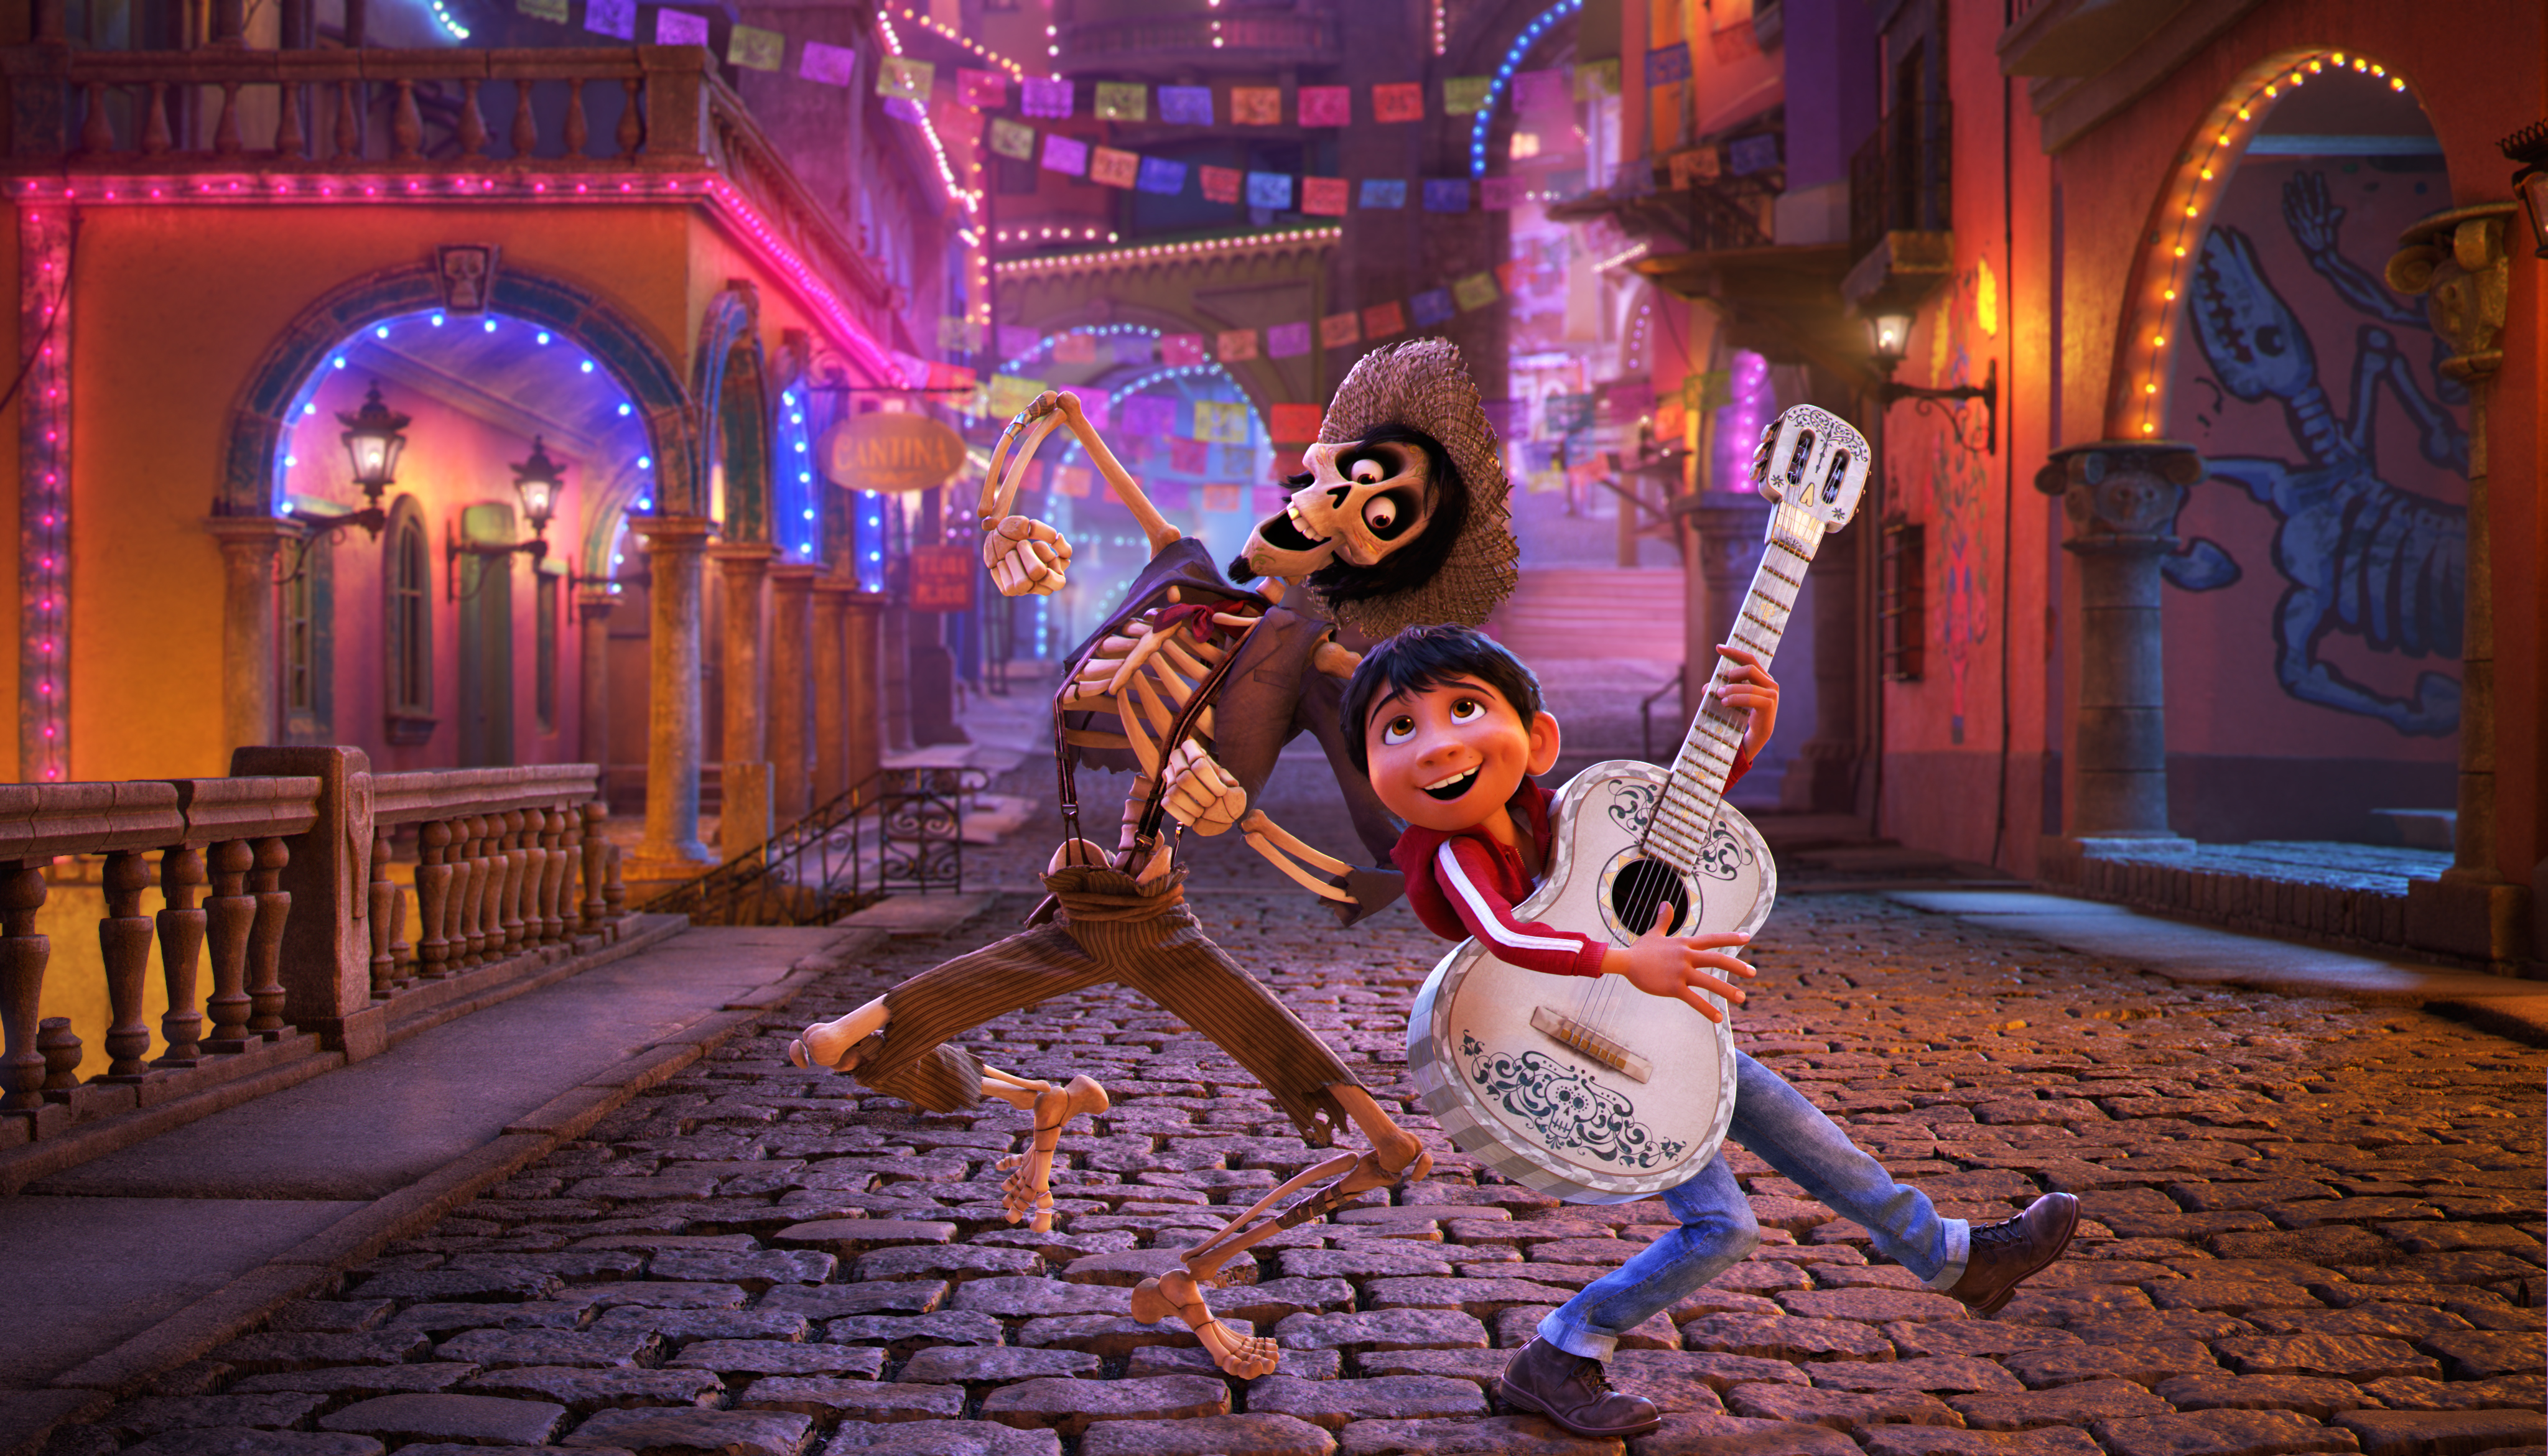 You'll love the music in the new Disney Pixar film Coco!